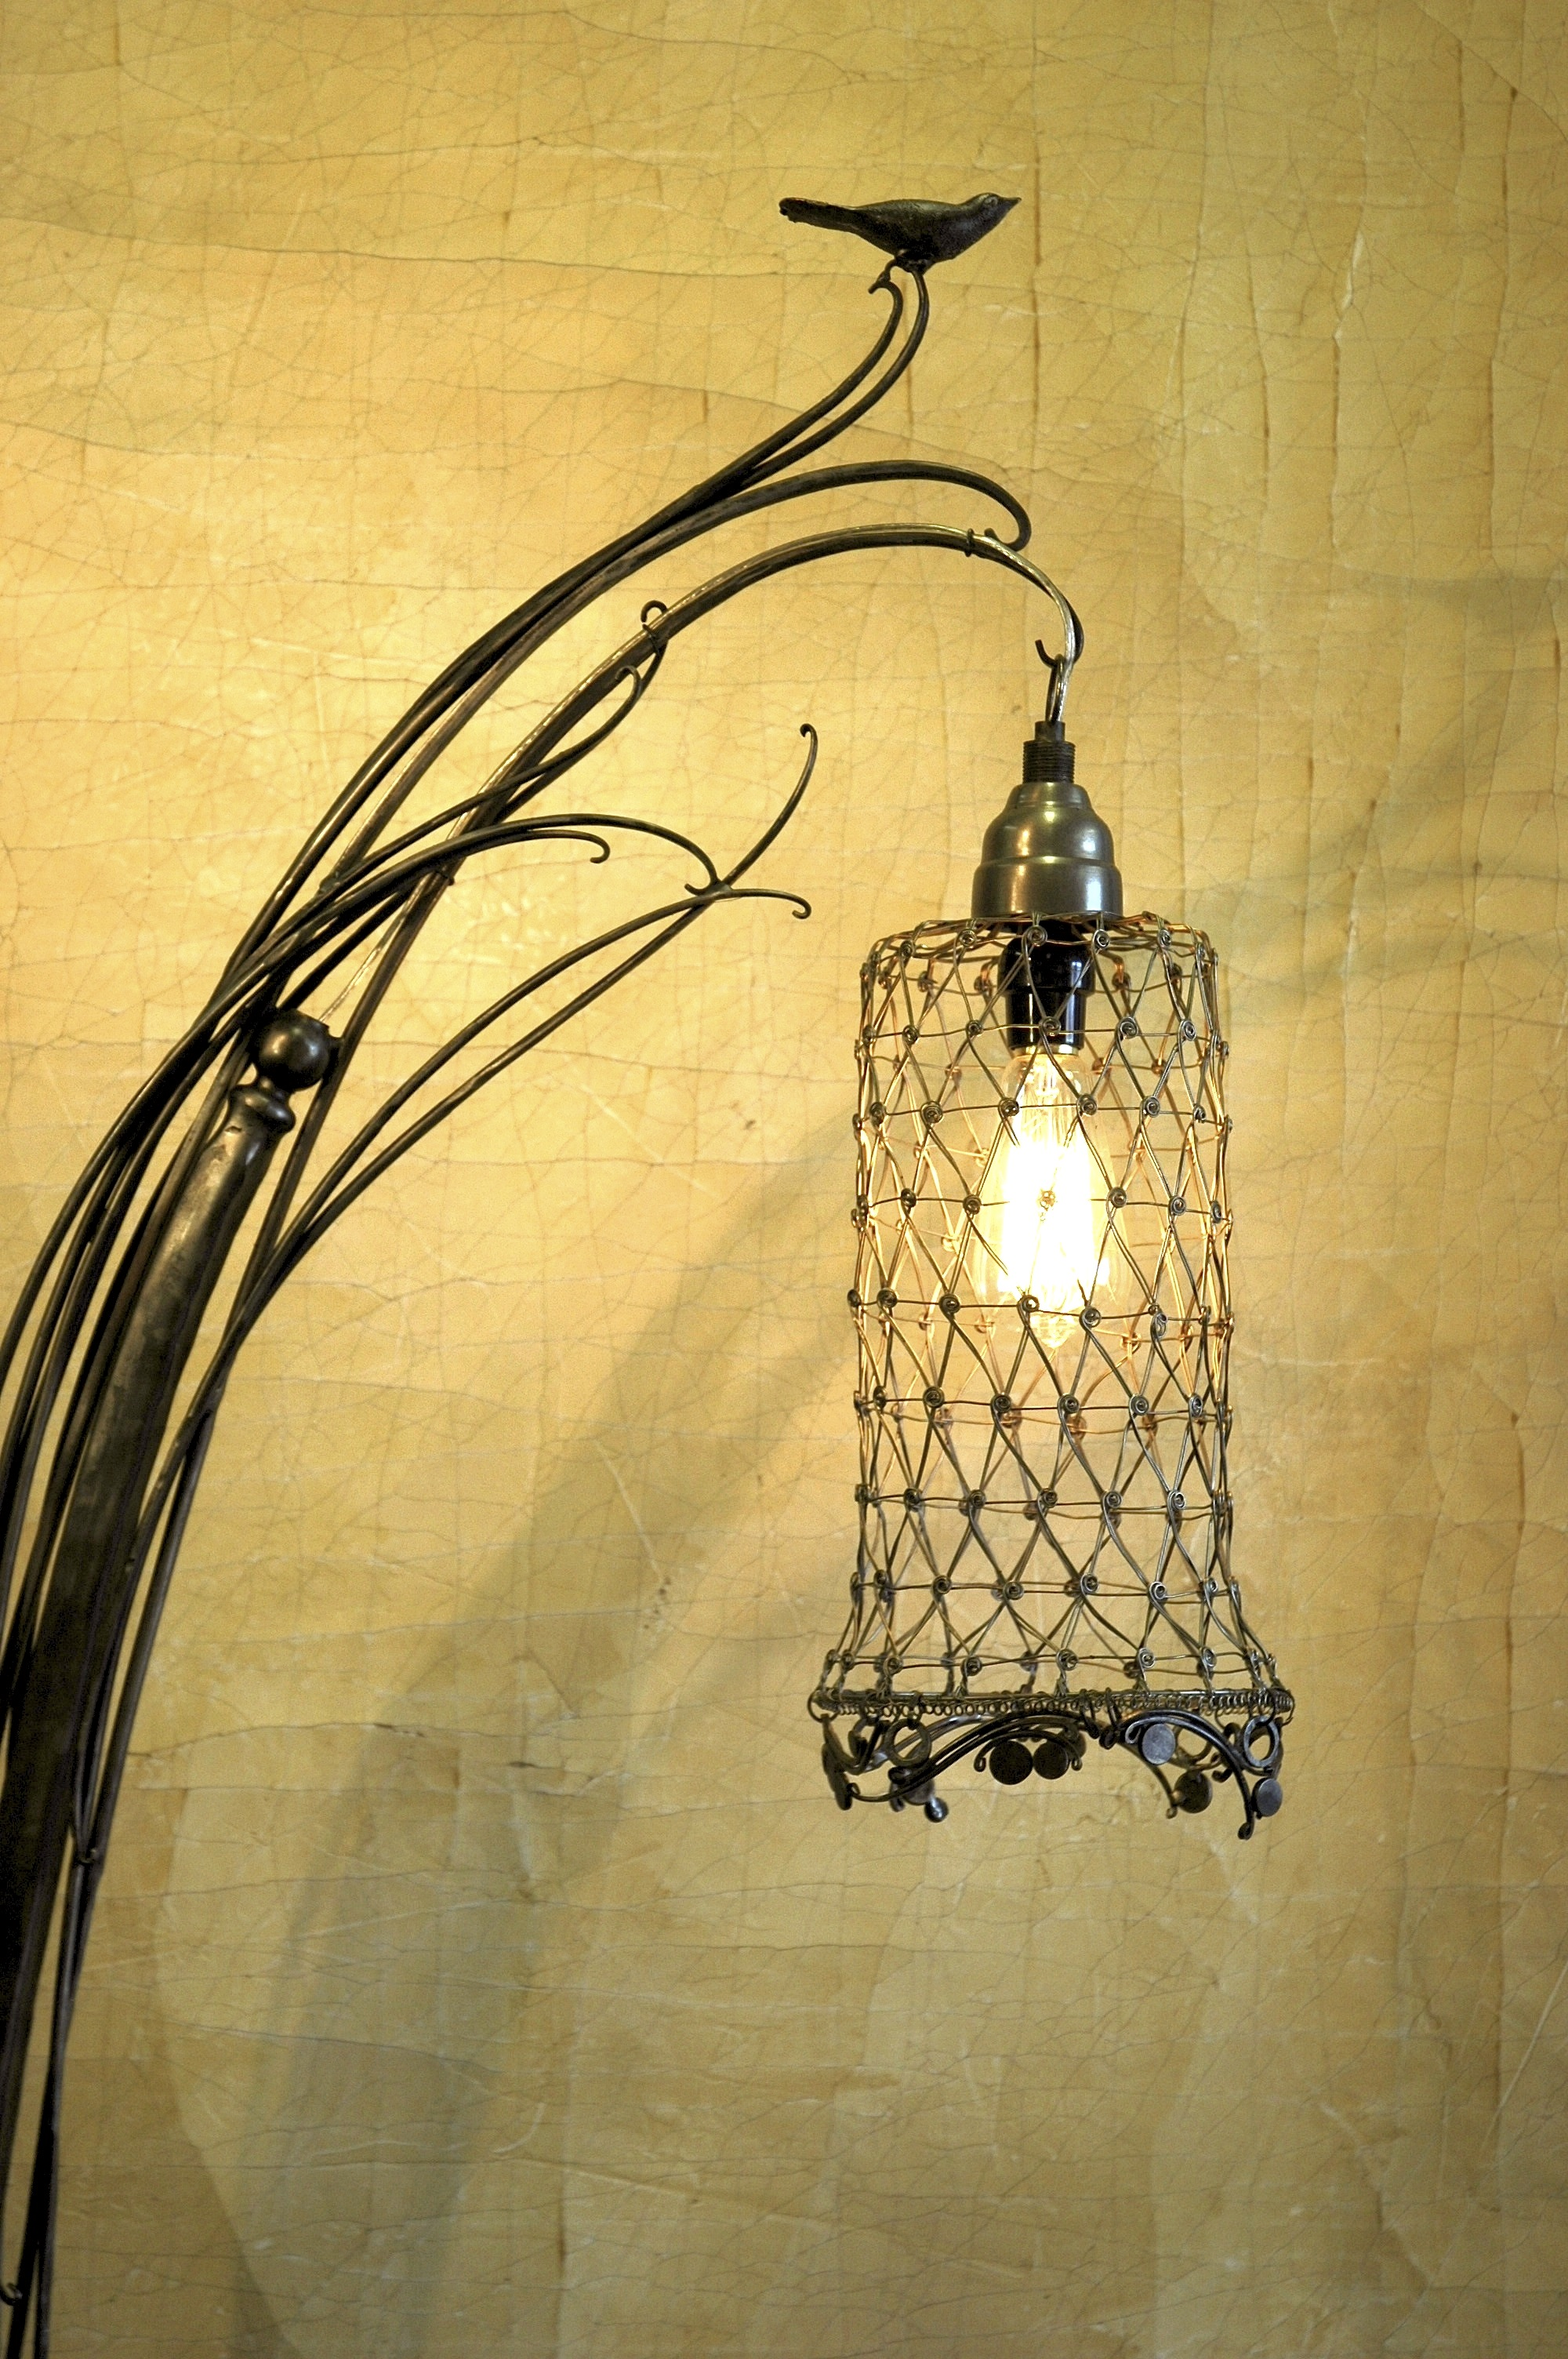 Lamp with Perched Bird